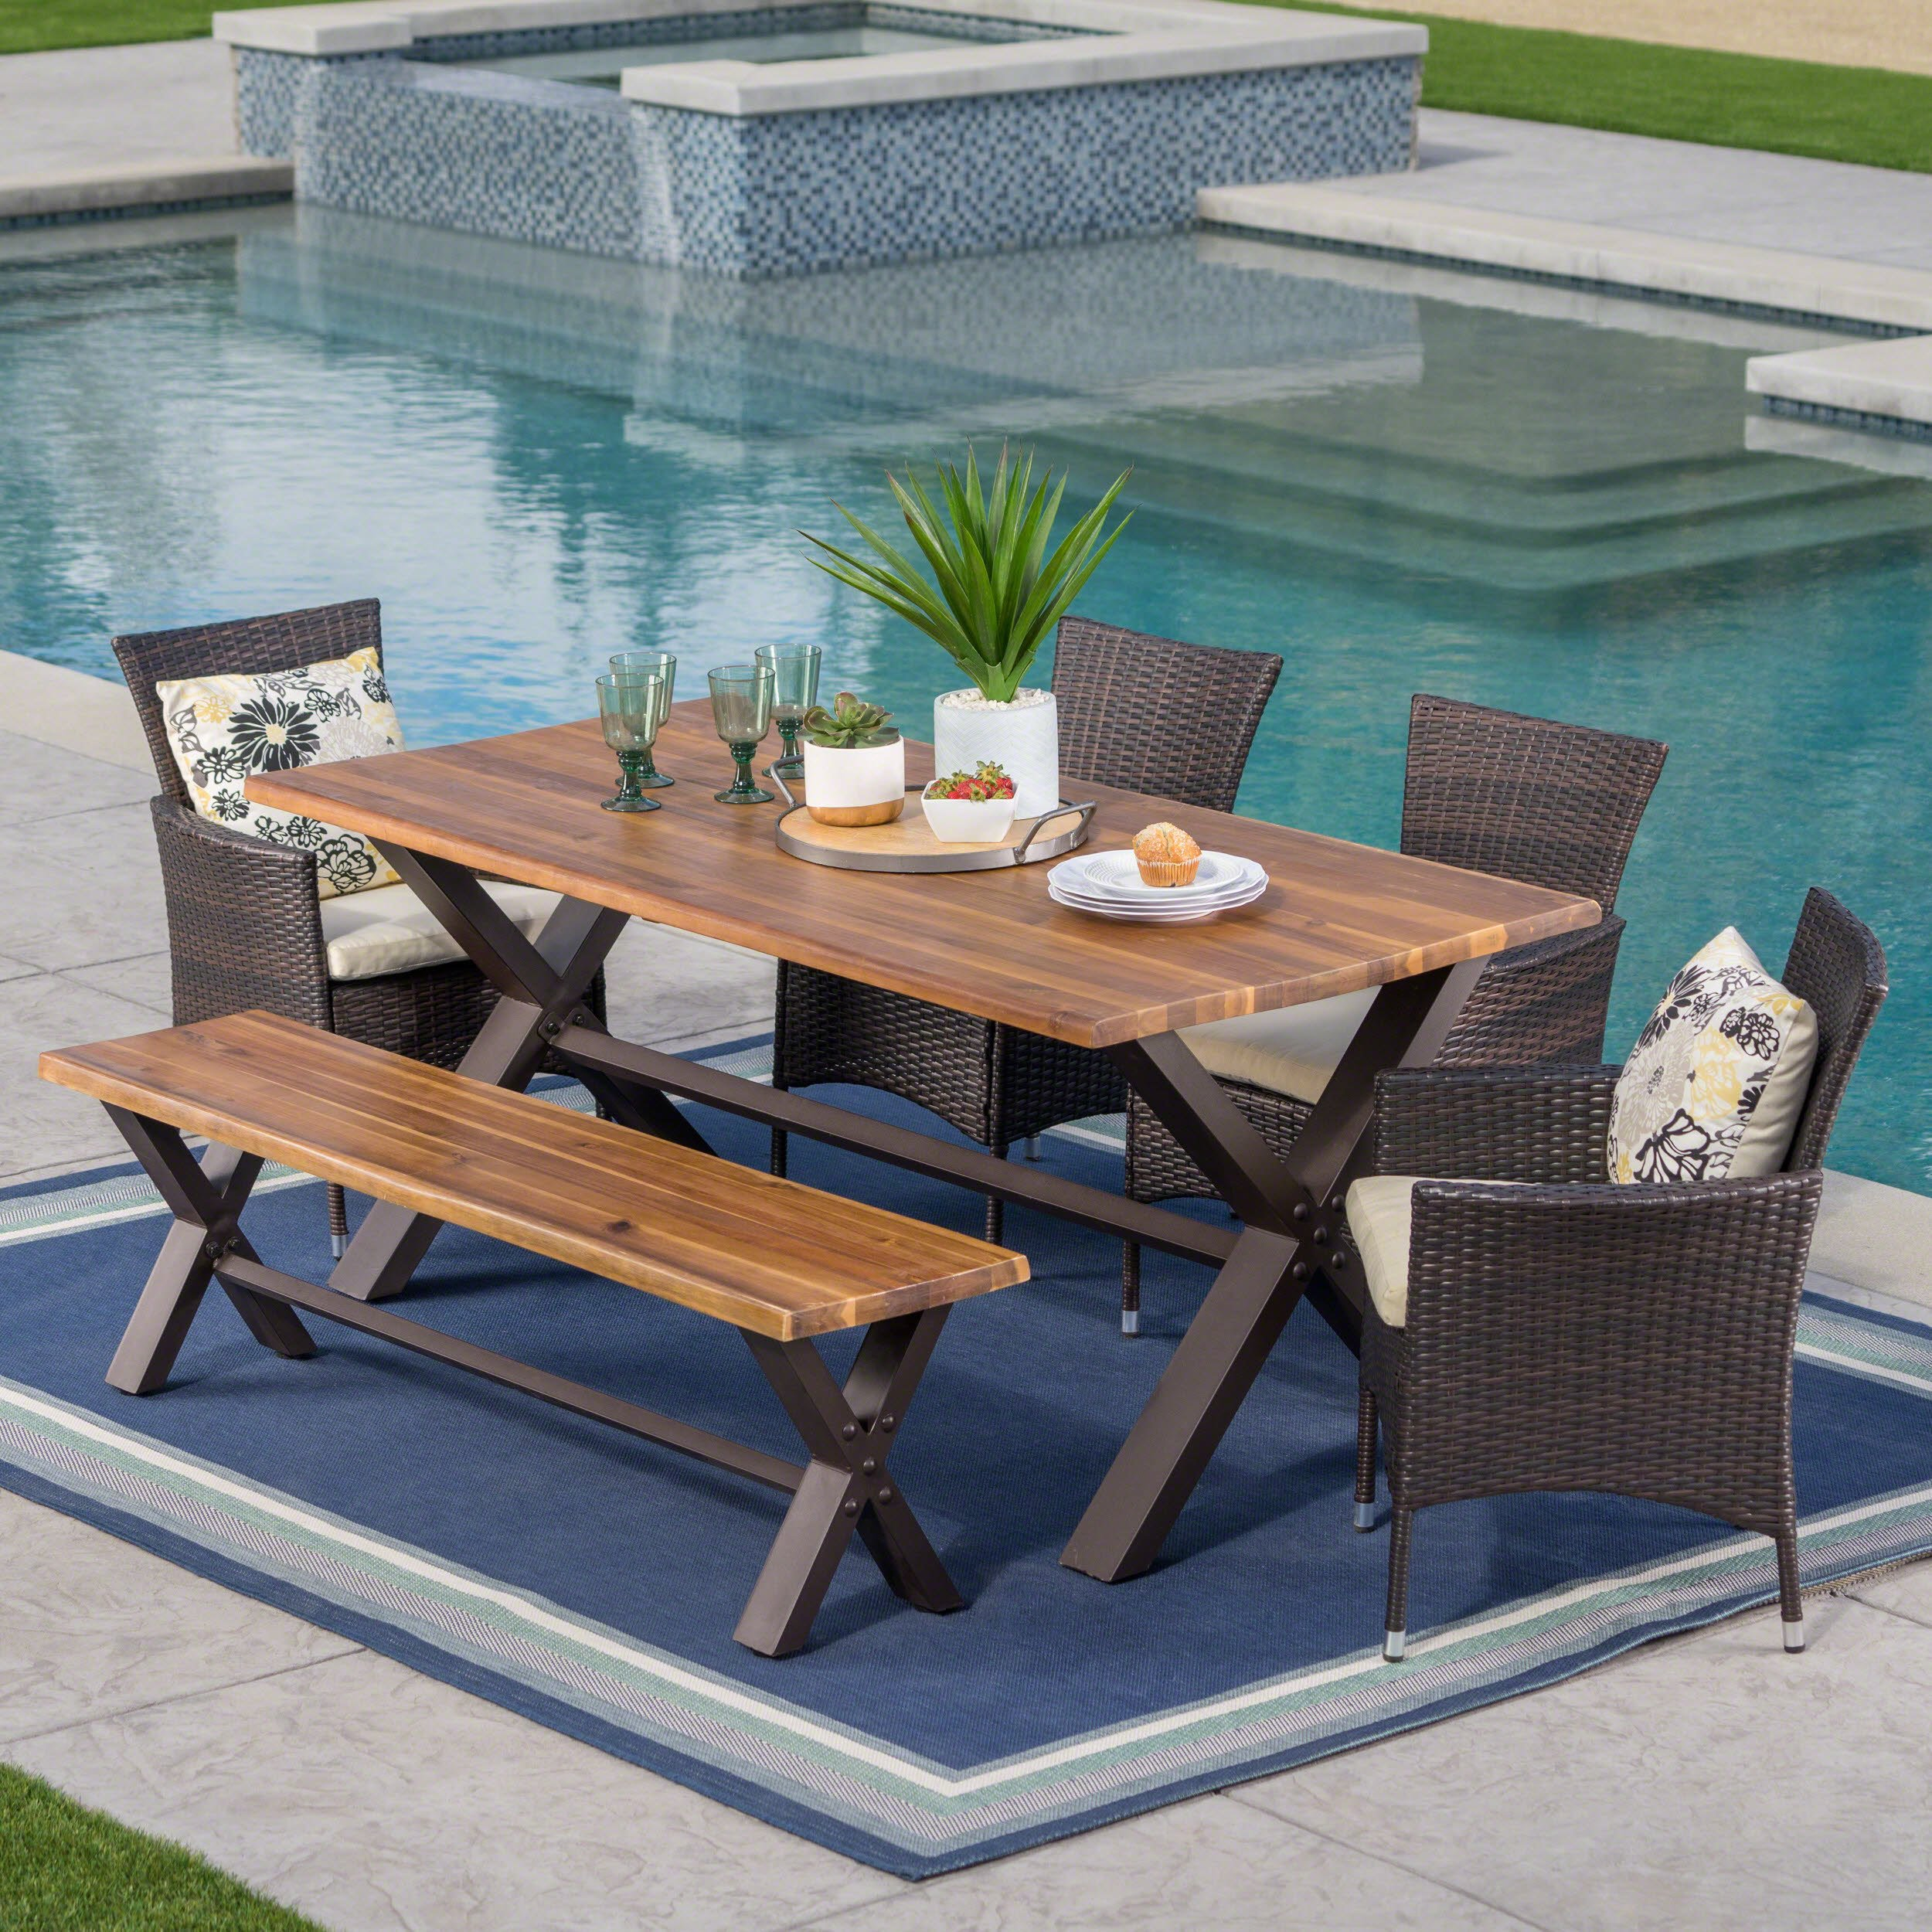 Buy Outdoor Dining Sets Online at Overstock | Our Best Patio Furniture Deals